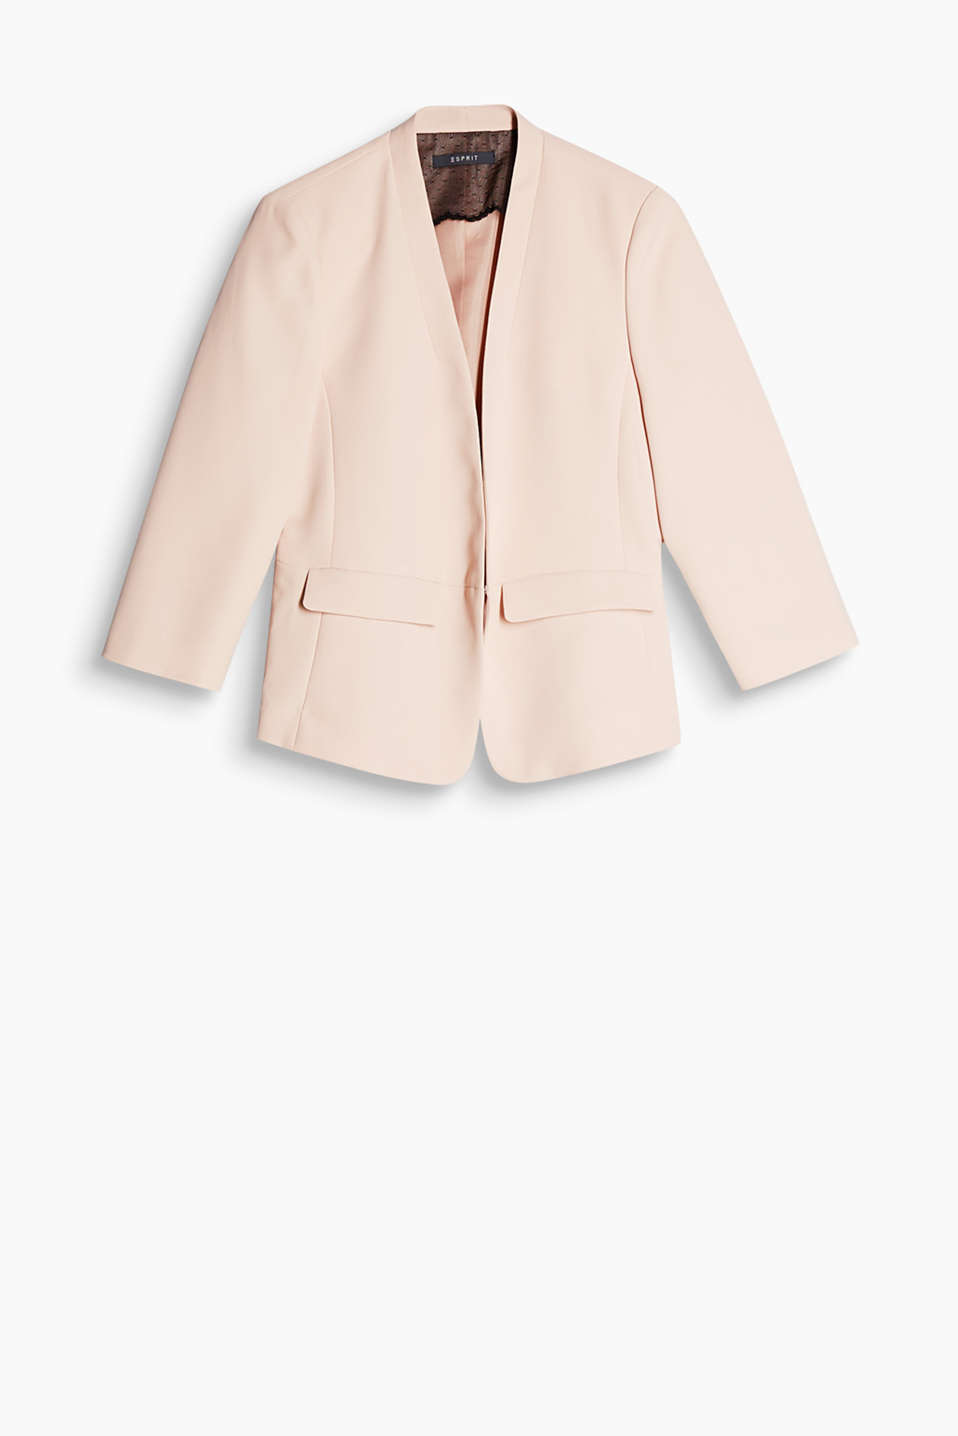 Your outfit saviour for so many occasions: short, lapelless blazer with three-quarter length sleeves and a hook fastening